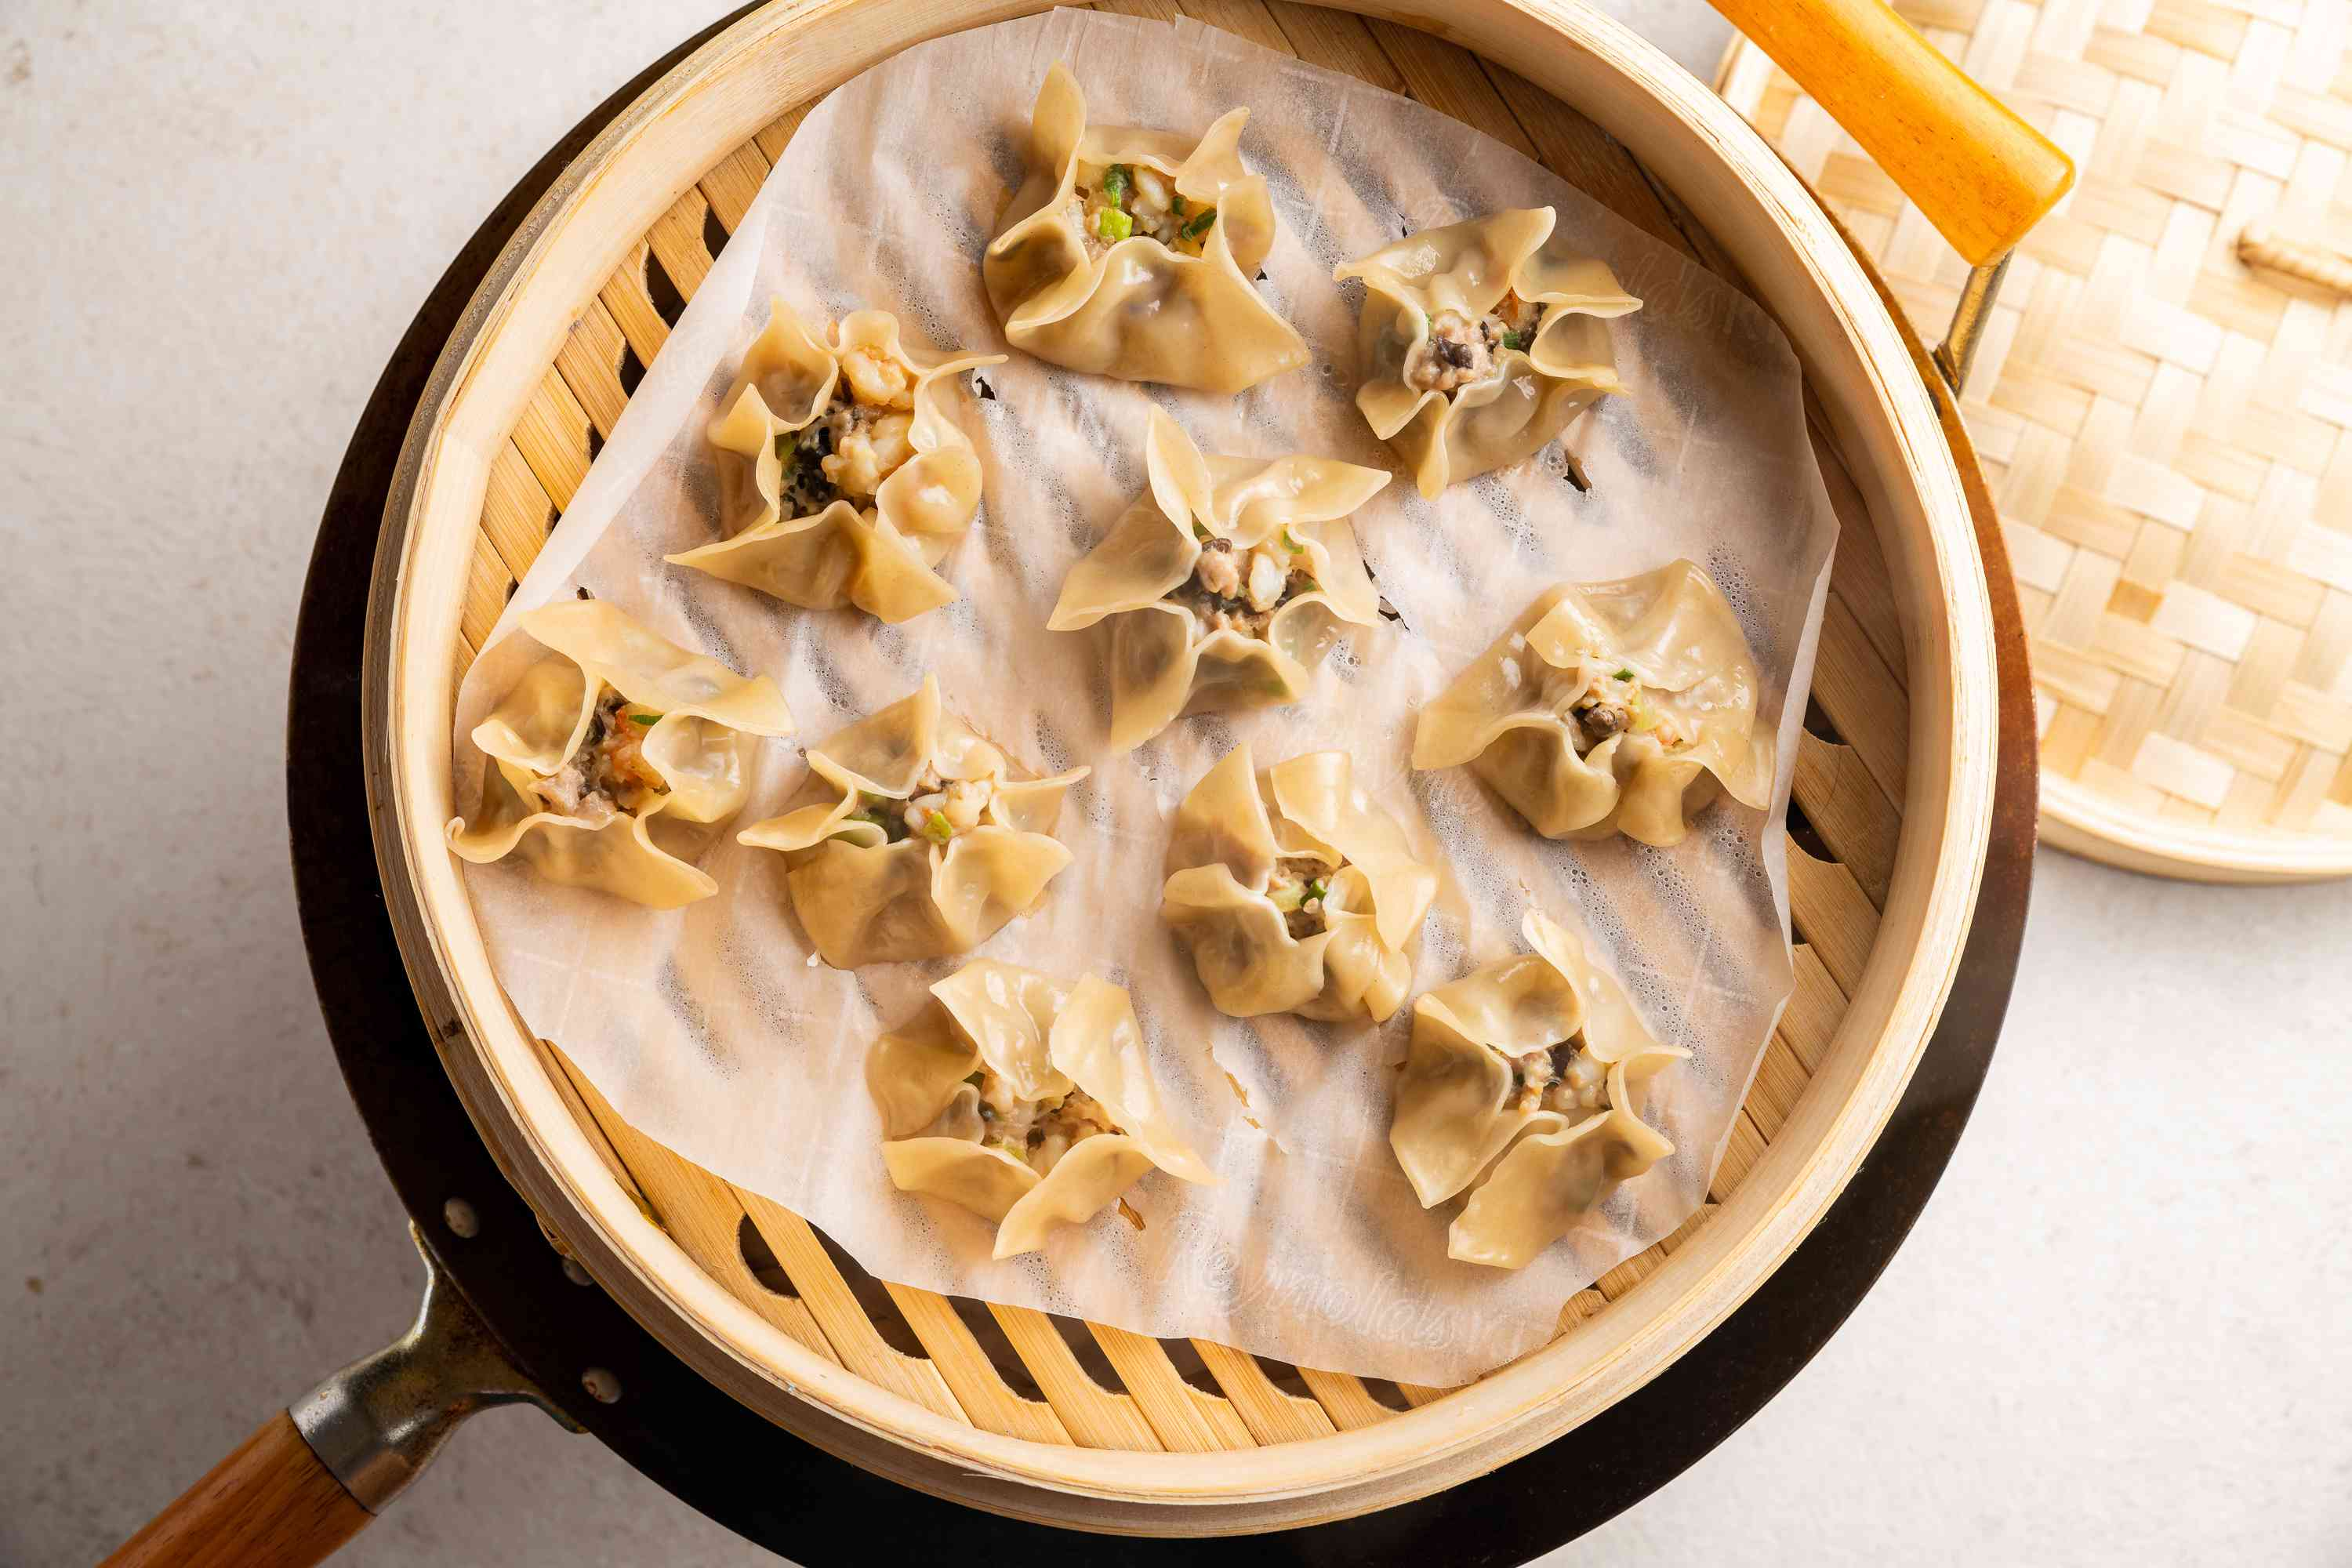 Steam the dumplings over boiling water